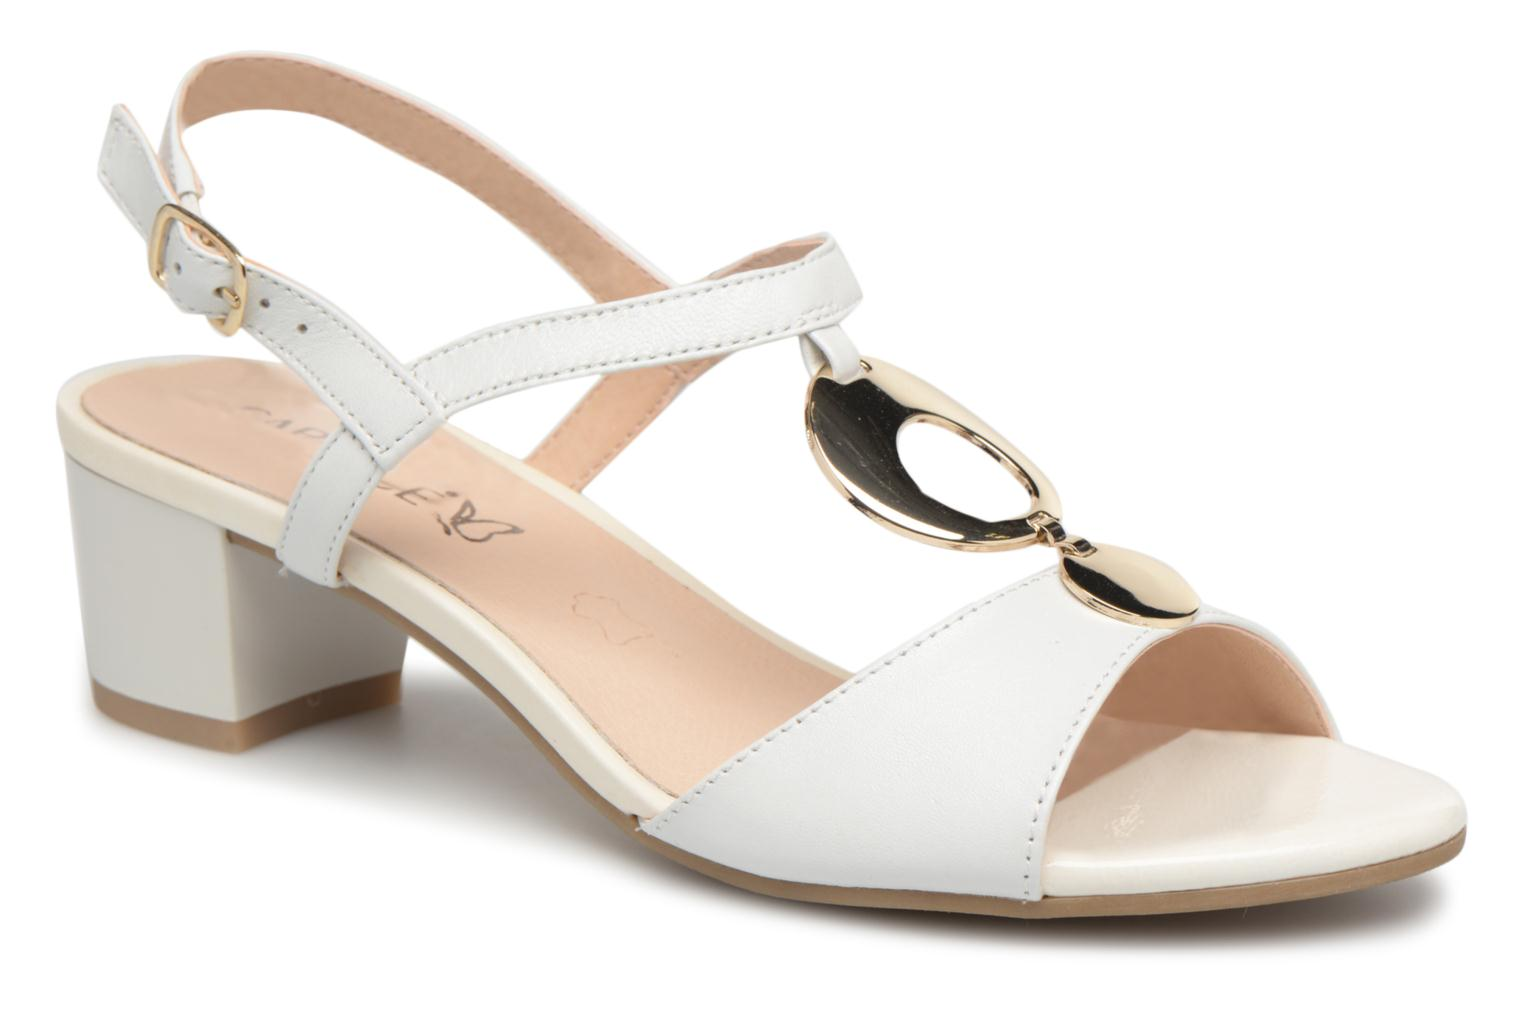 Marques Chaussure femme Caprice femme Nadelina White Perlato